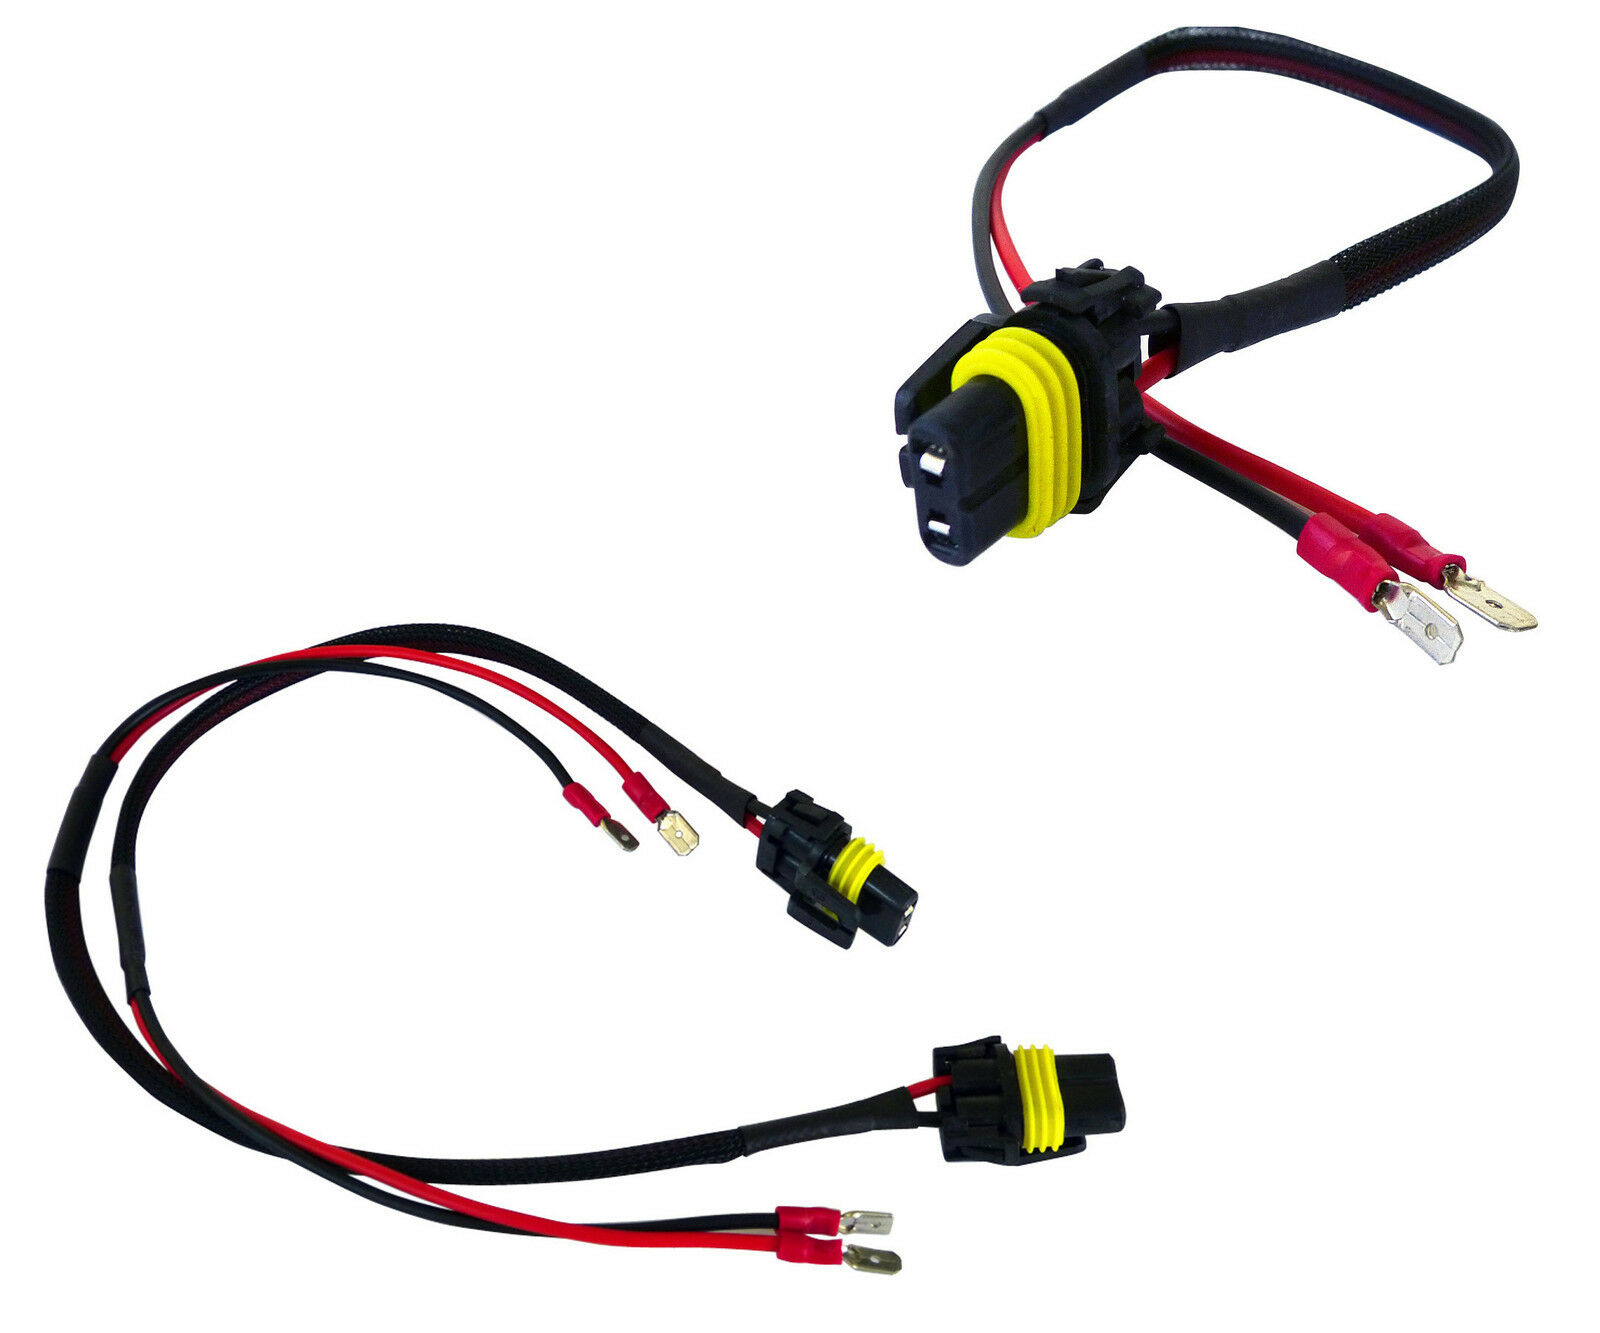 h1 h3 male connectors plugs pigtail bulb wires harness hid input you re almost done h1 h3 male connectors plugs pigtail bulb wires harness